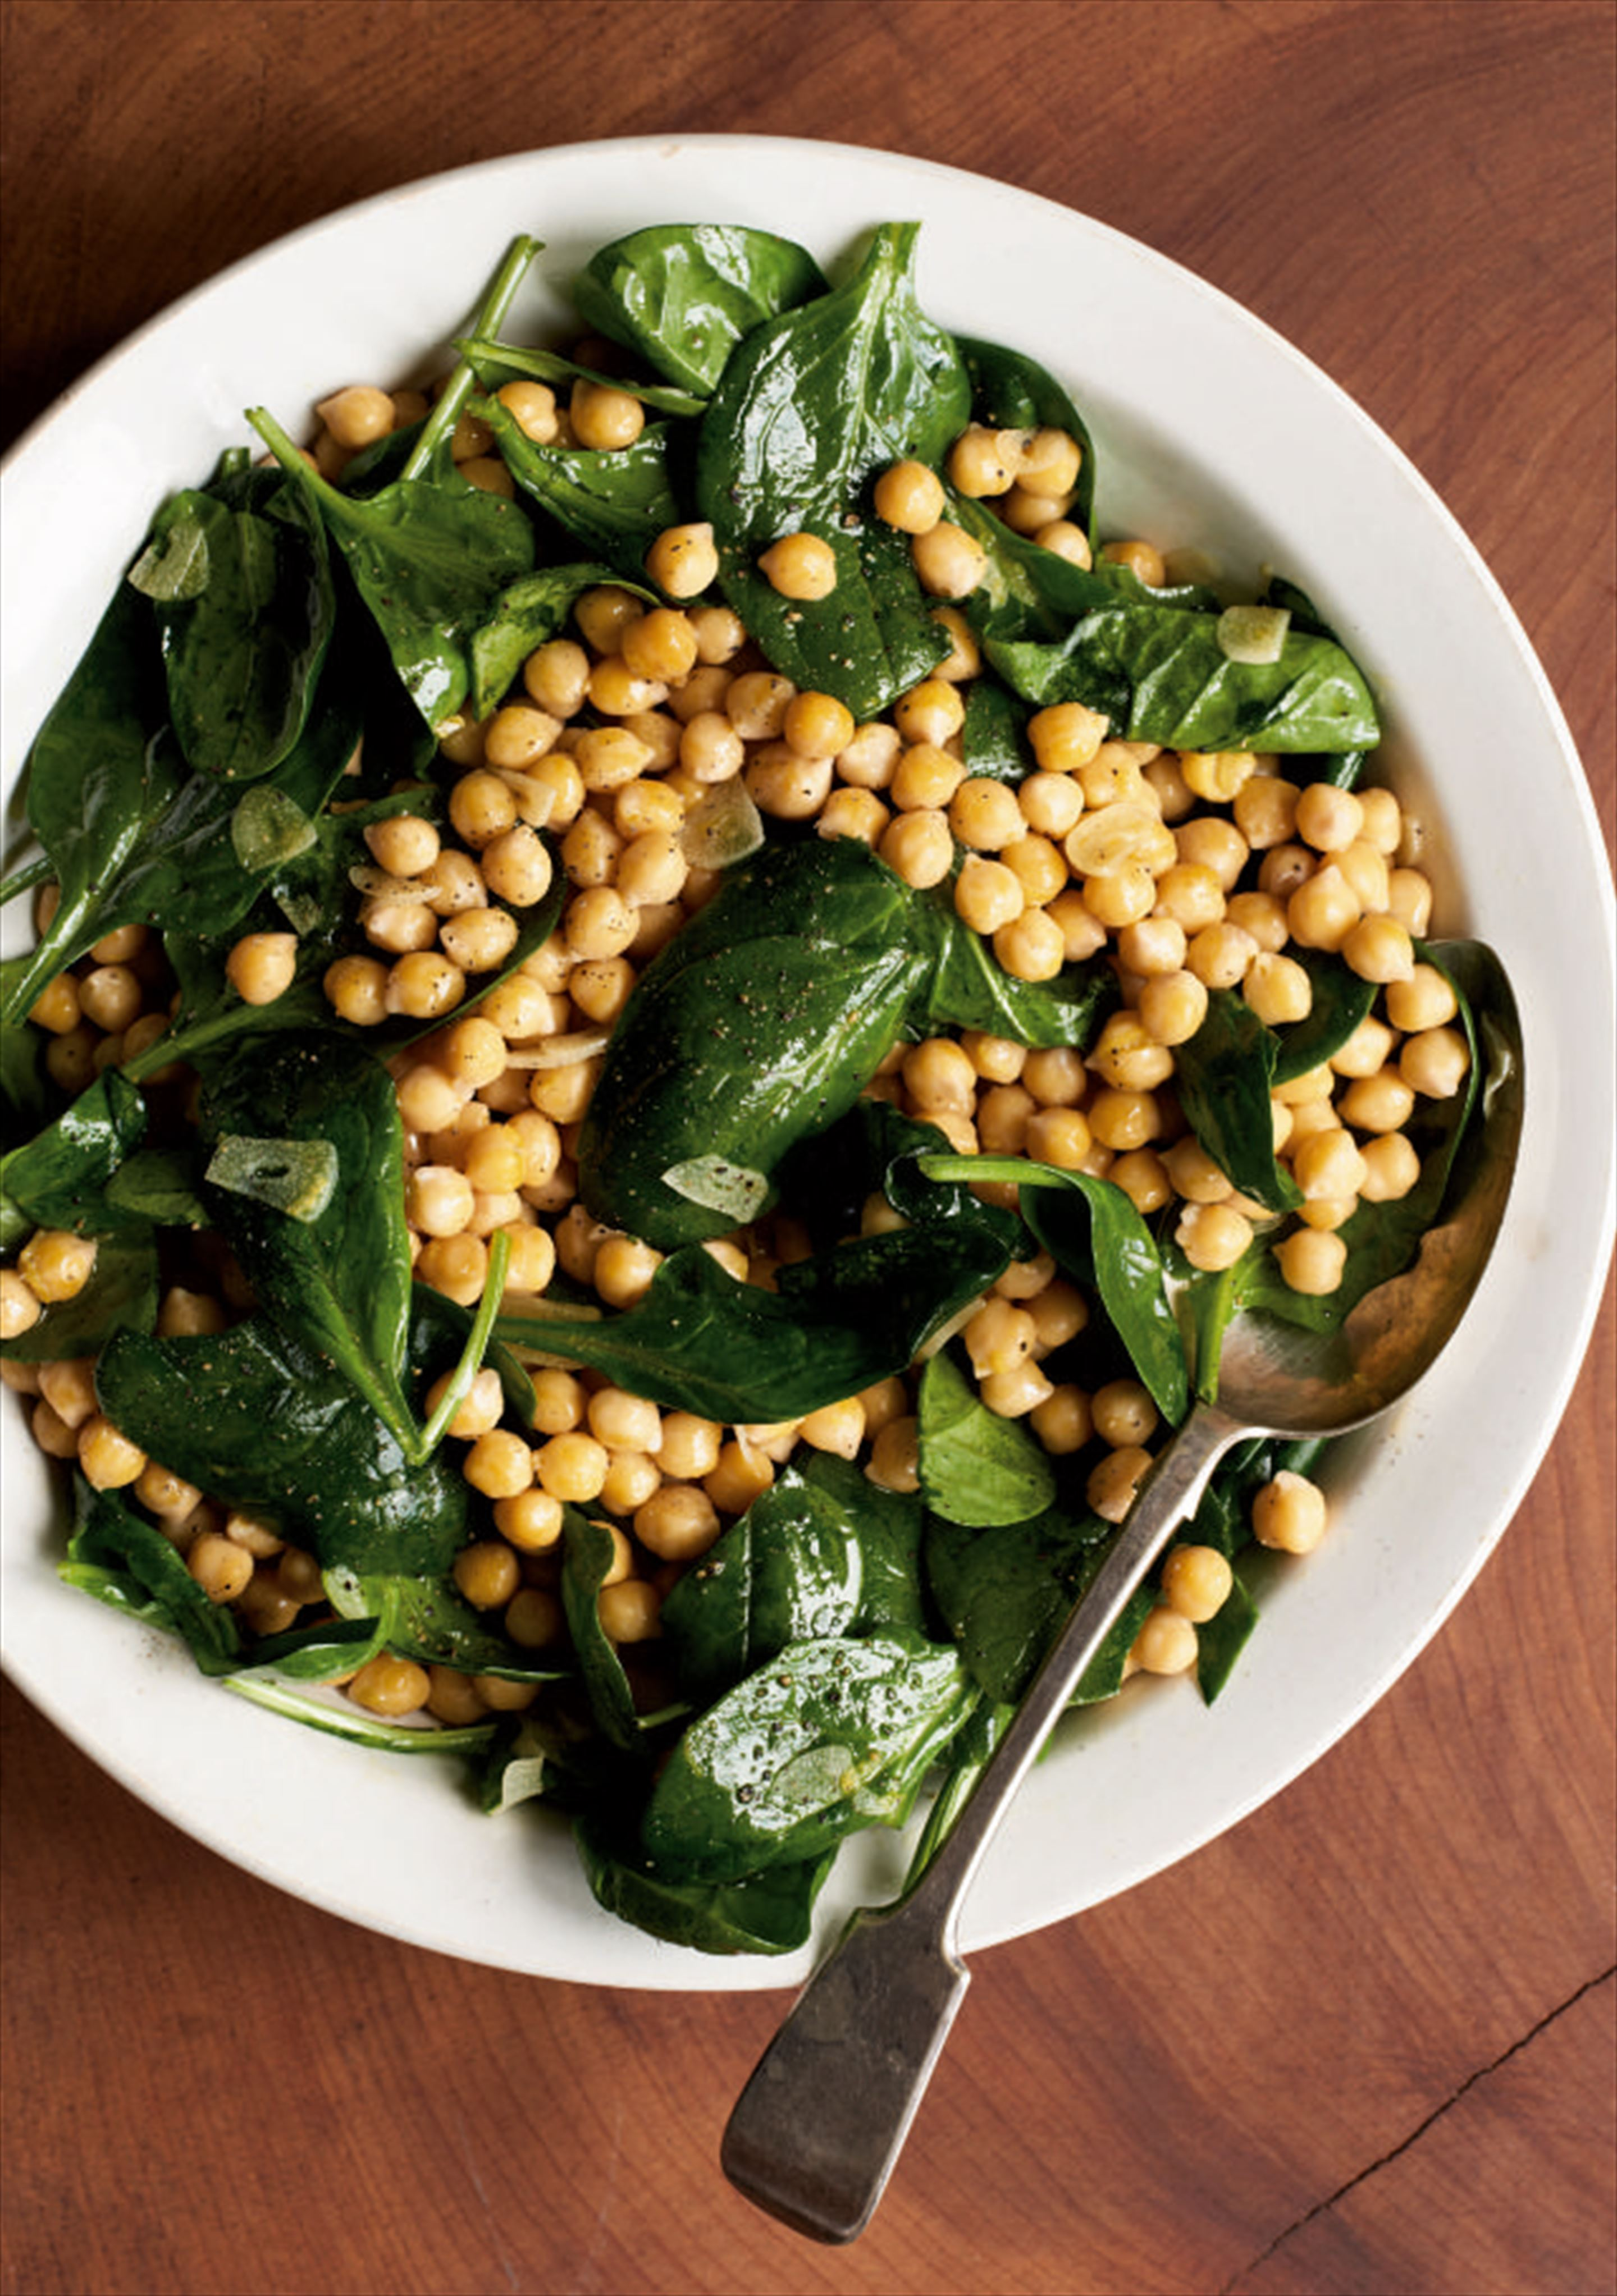 Chickpeas with garlic oil and spinach